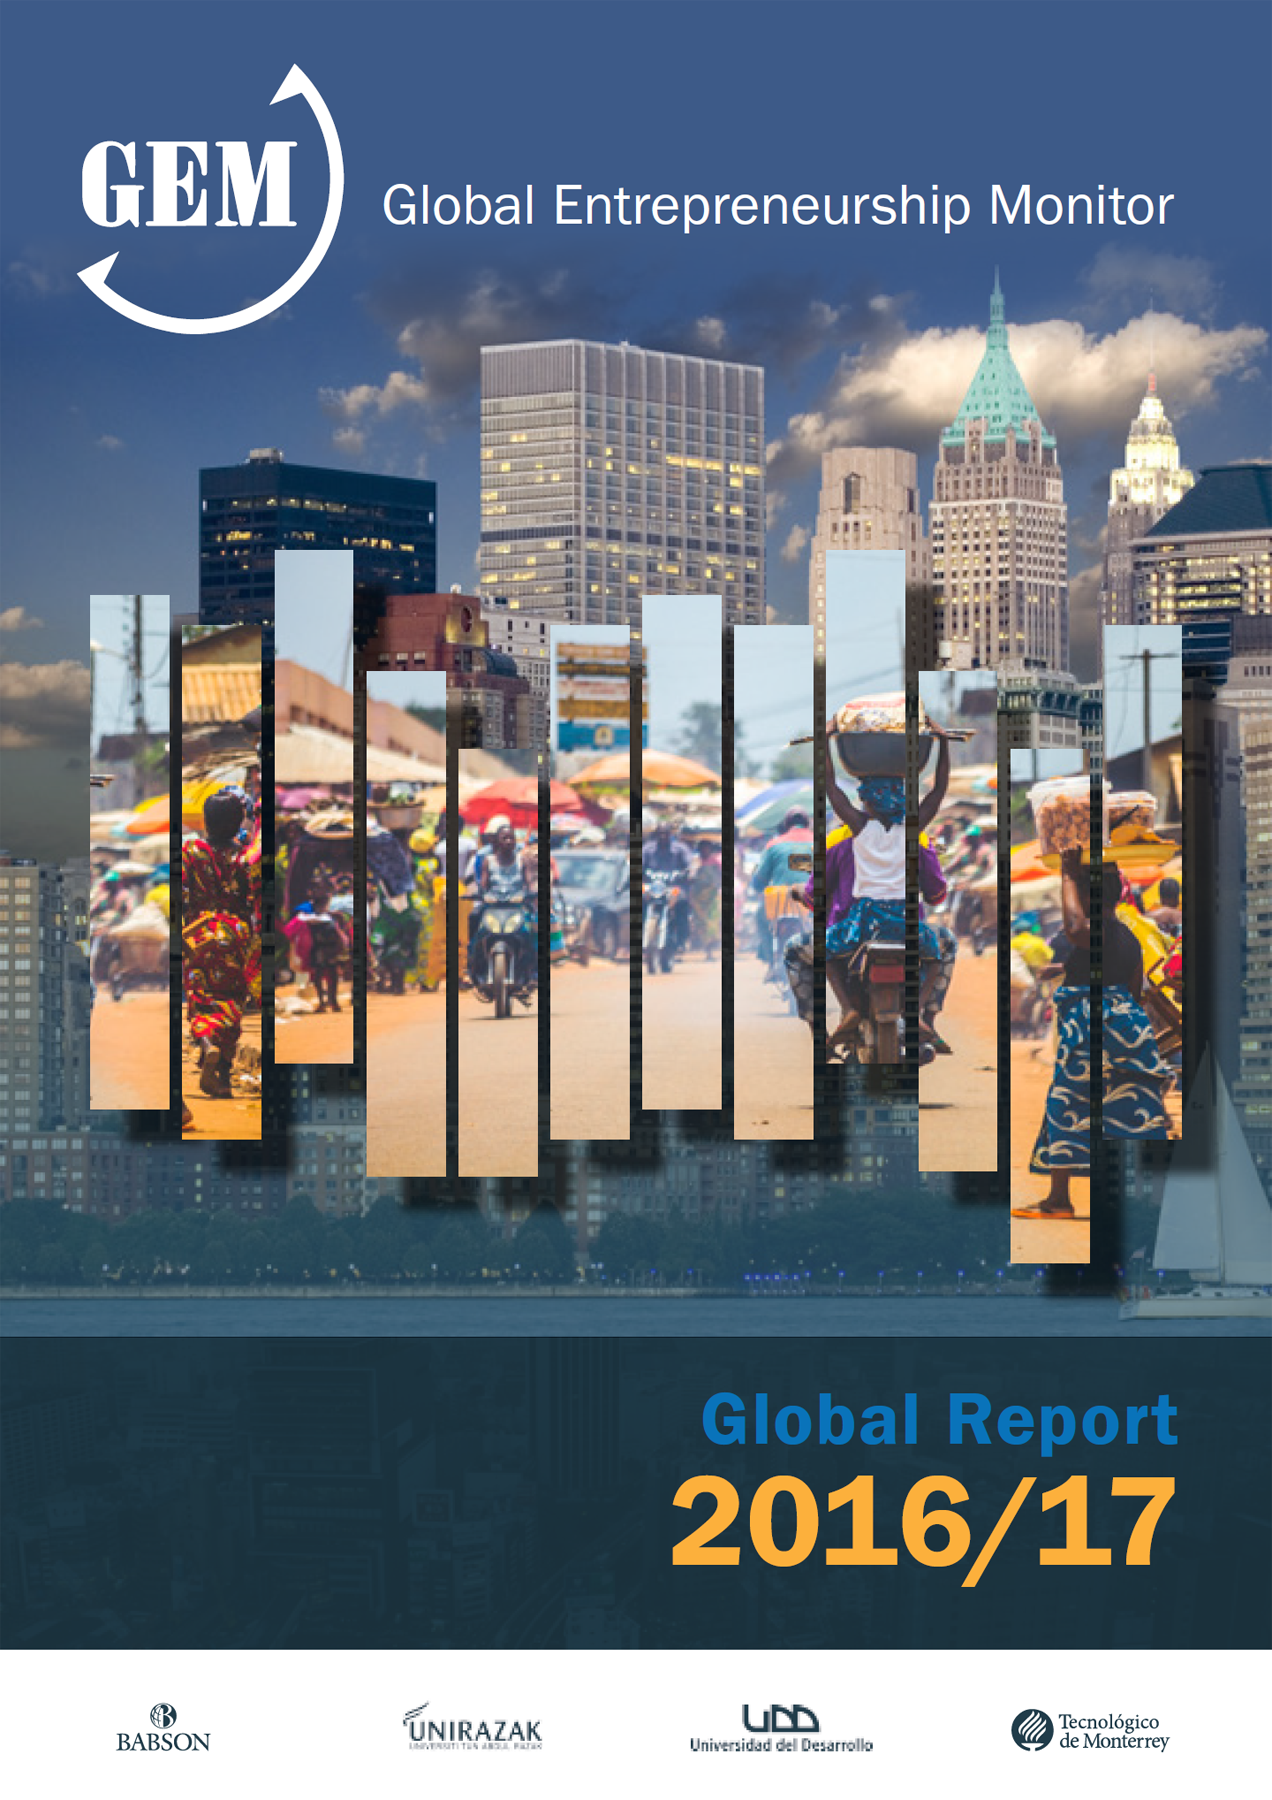 GEM - Global Report 2016/2017